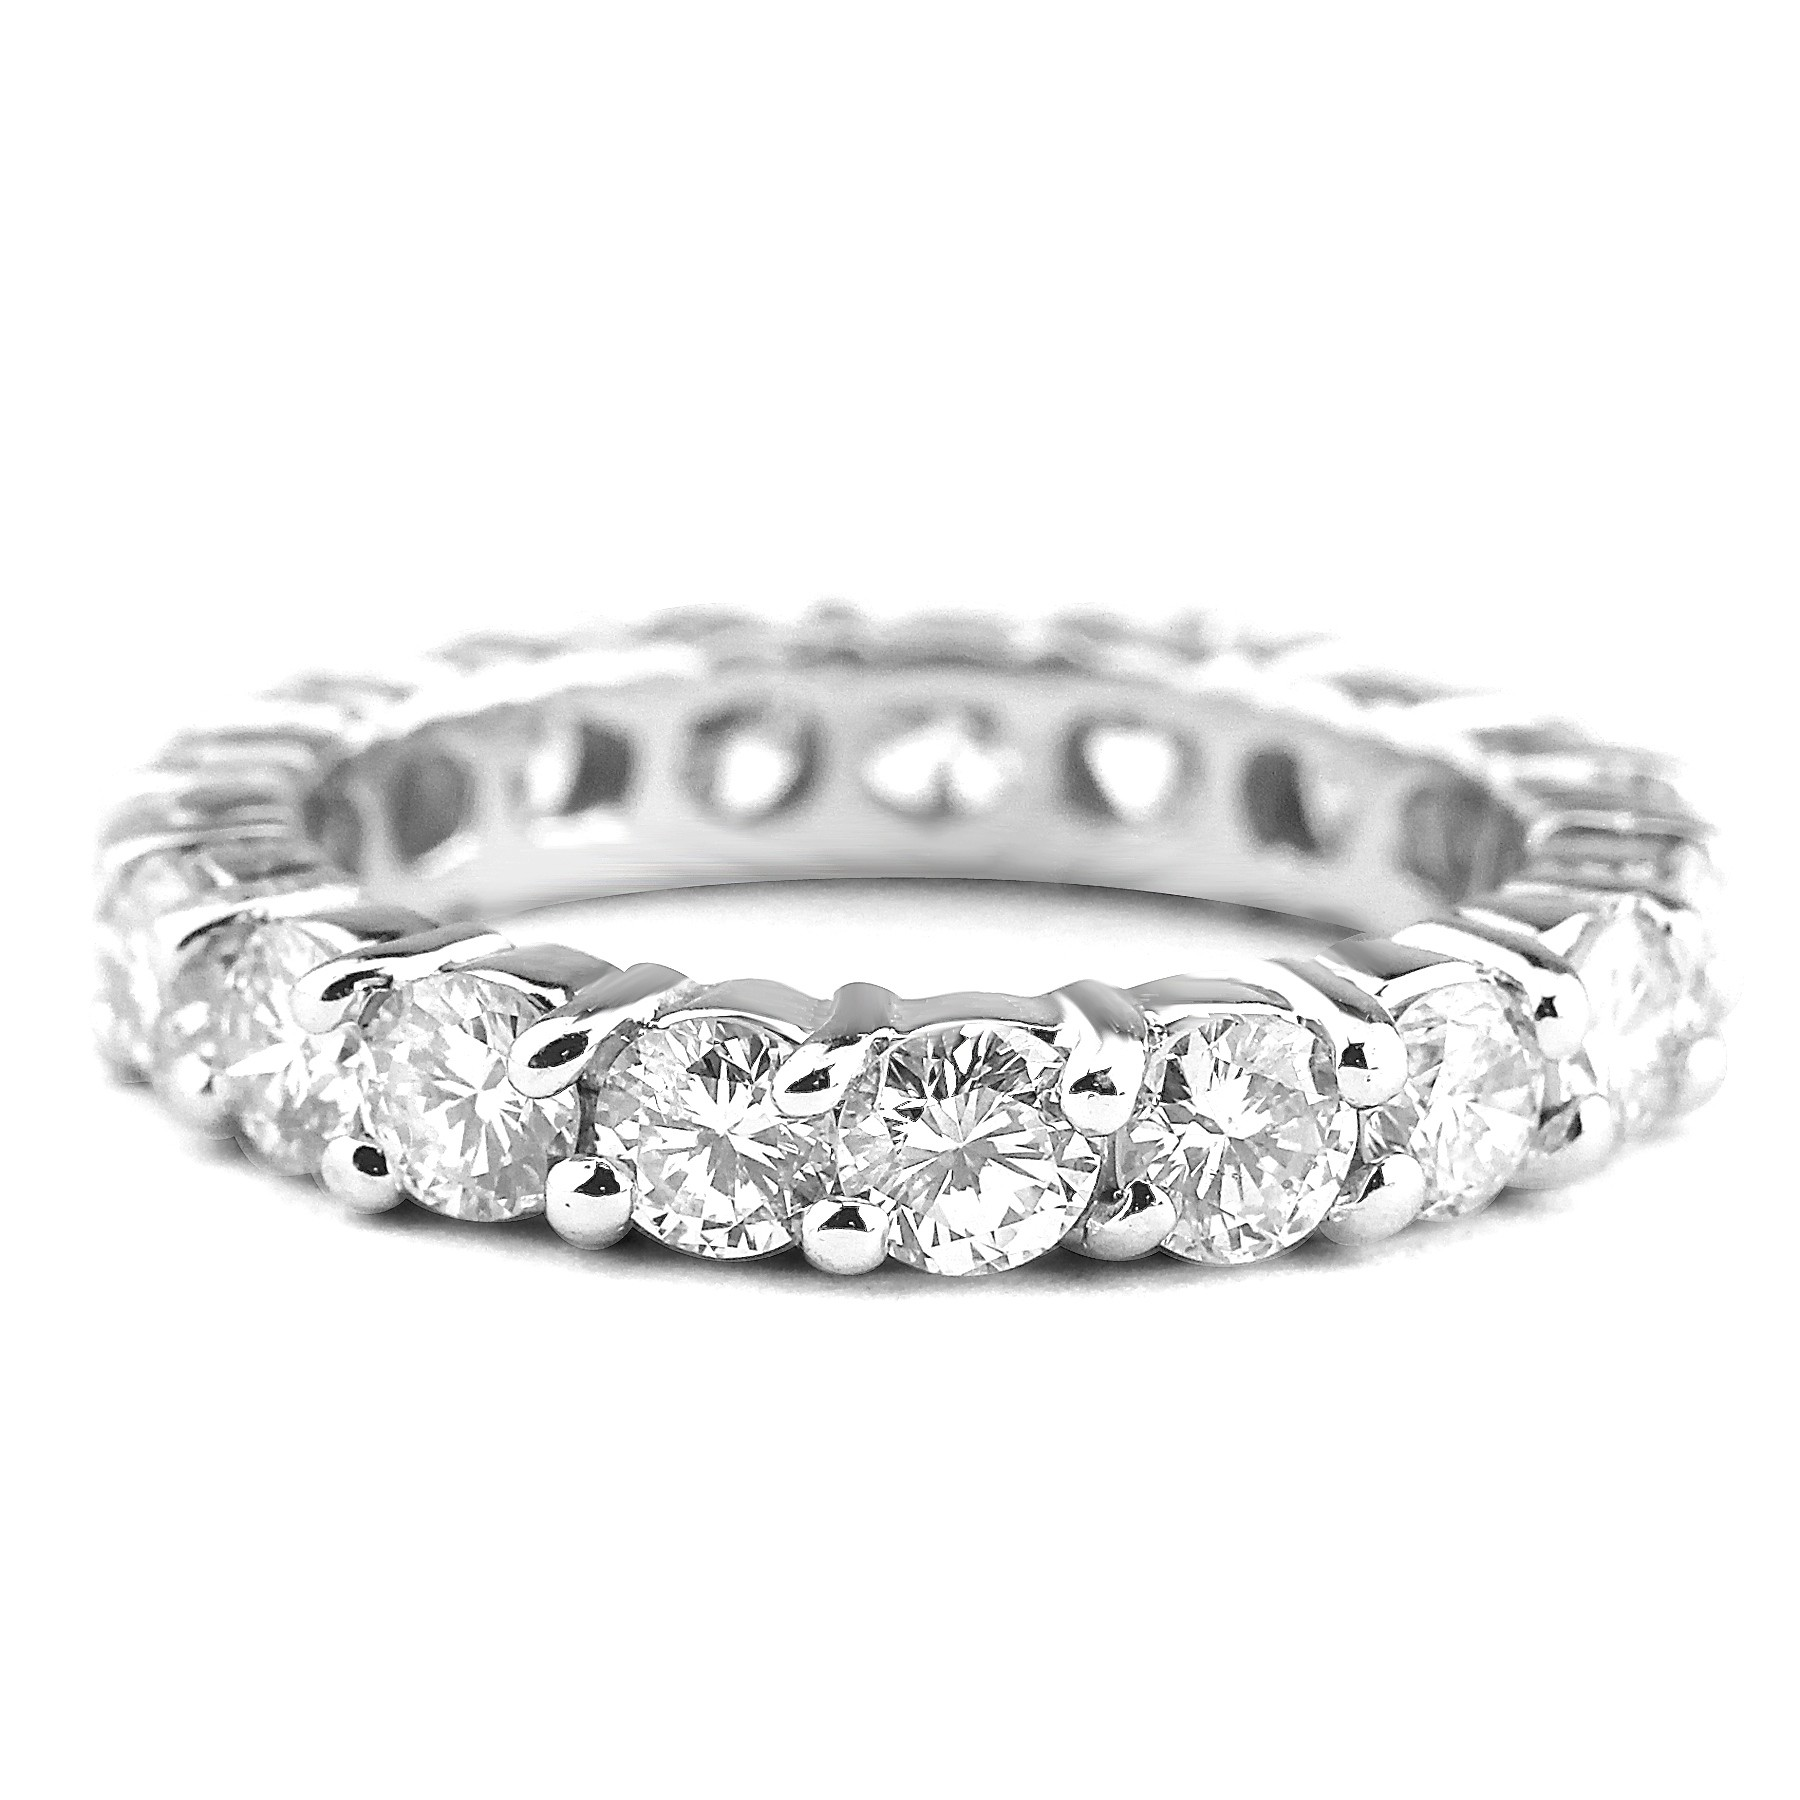 click madison or rose ms junikerjewelry cut band to enlarge image over move your bands eternity com mouse diamond